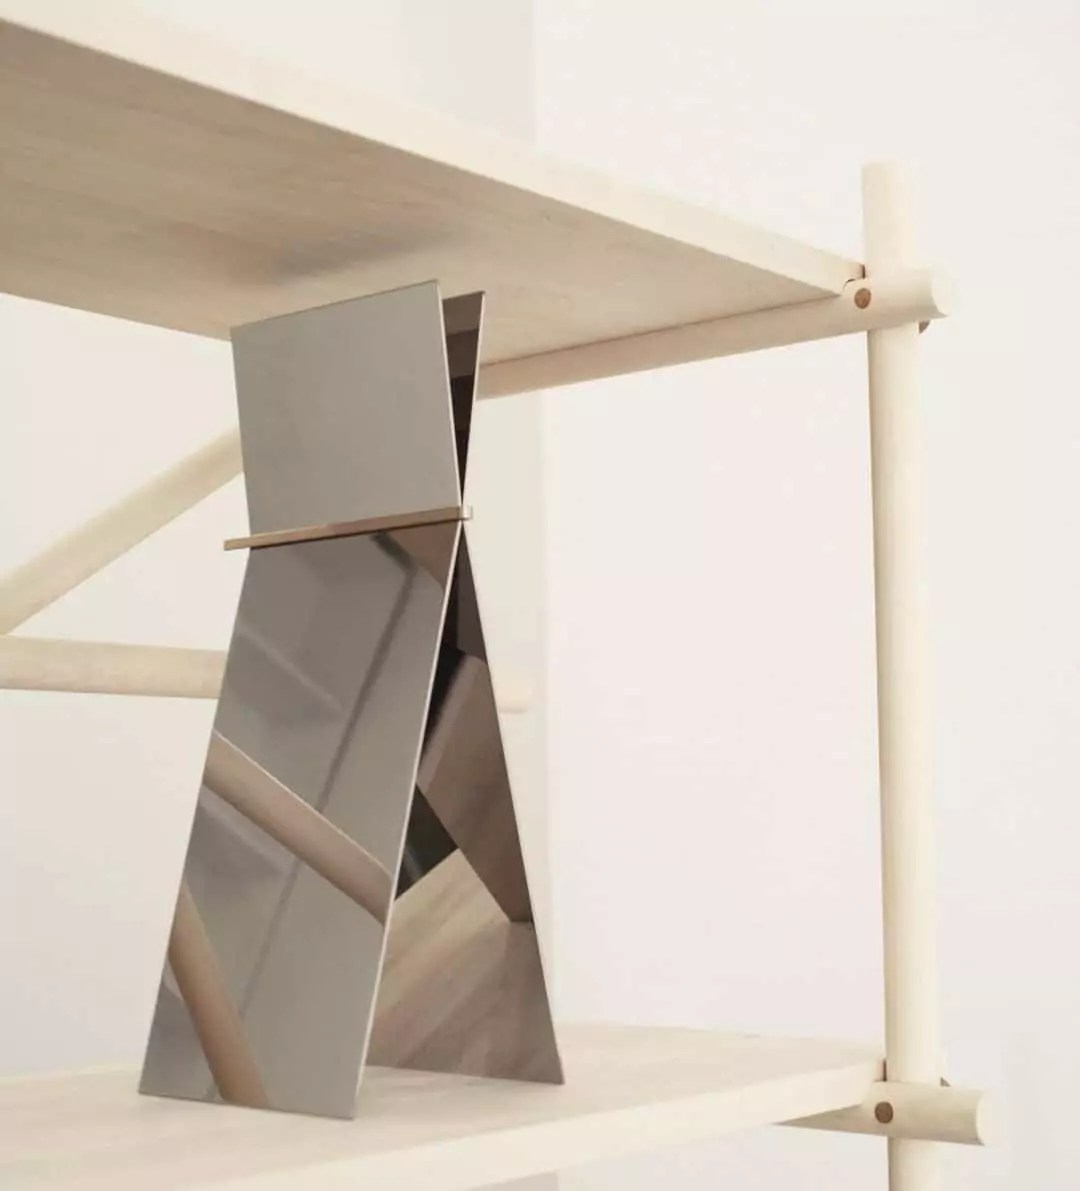 I'll be Your Mirror: Sculptural Table Mirror